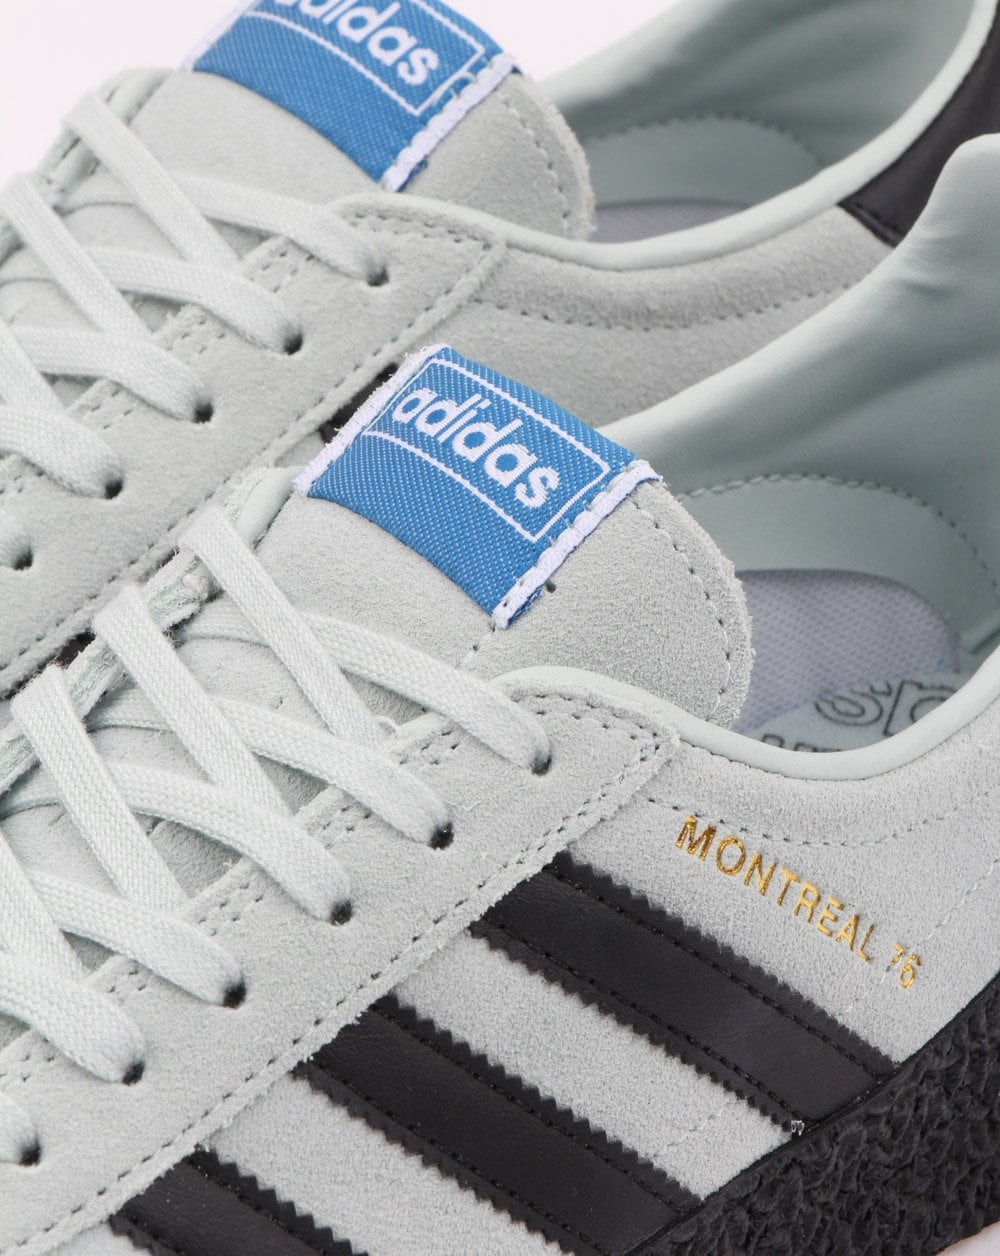 Adidas, Montreal 76, Trainers, Mint